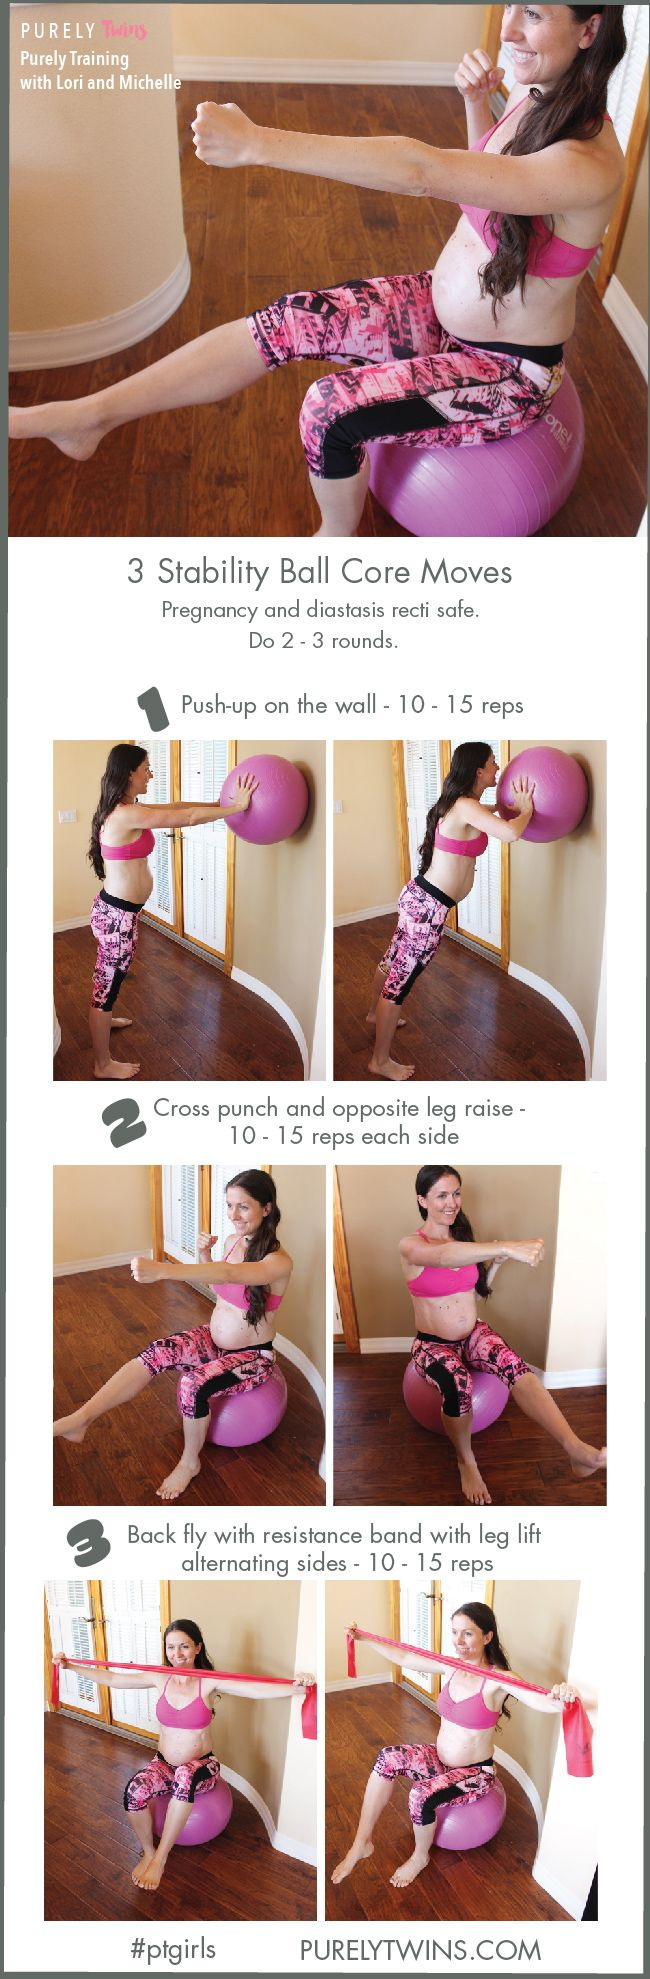 Confused on what are the best and safe CORE exercises to do during PREGNANCY? Especially to help prevent DIASTASIS. Here are 3 must-do core exercises that work the deep core muscles to keep the core and pelvic floor supported as your belly grows over each trimester. Note there are NO front loaded exercises which is key. Great routine for your abs to support your growing baby.